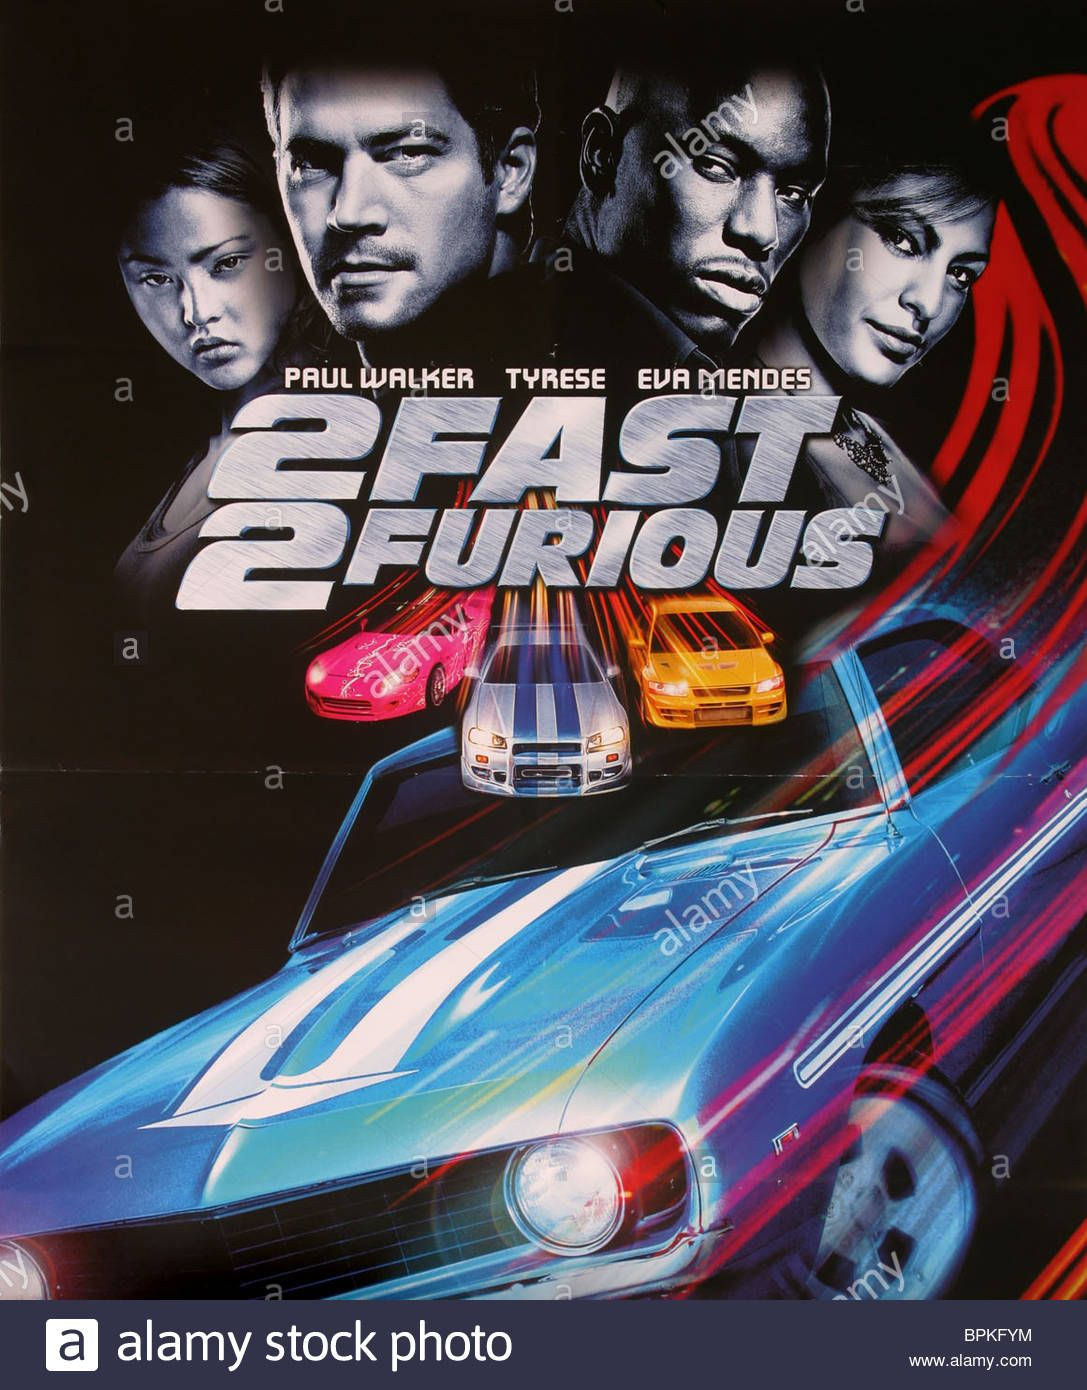 2 Fast 2 Furious 2 Fast 2 Furious 2003 U S Movie Poster 2g This Is Us Movie Ludacris Mendes